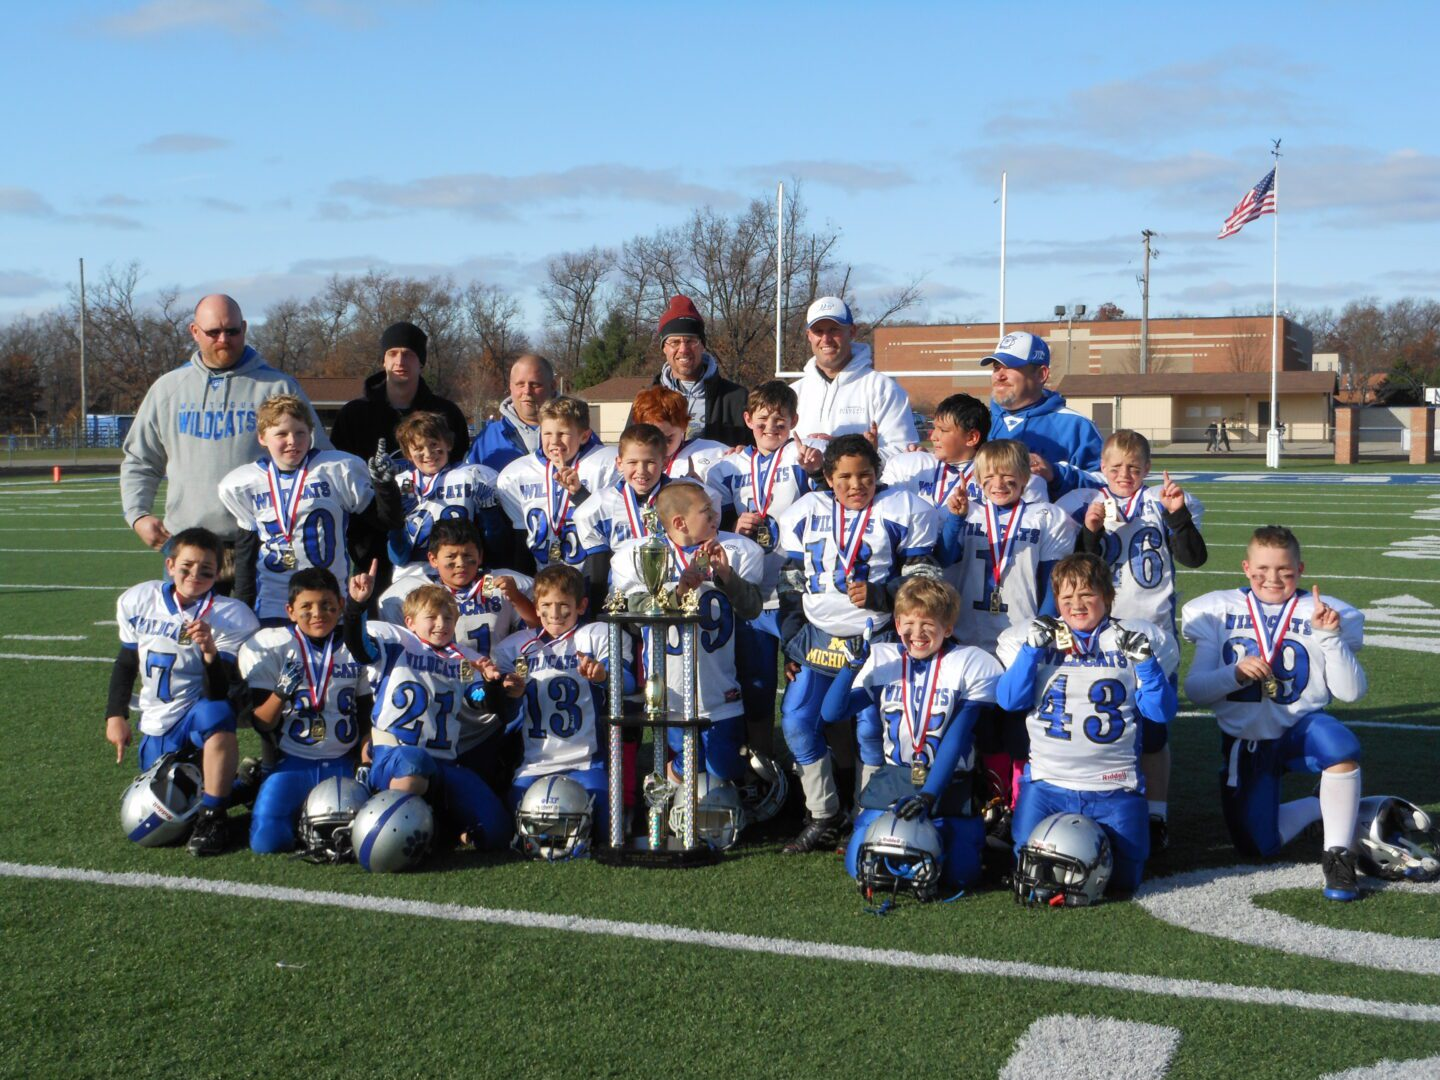 Montague 9-10 year old team wins Battle on the Lakeshore Tournament